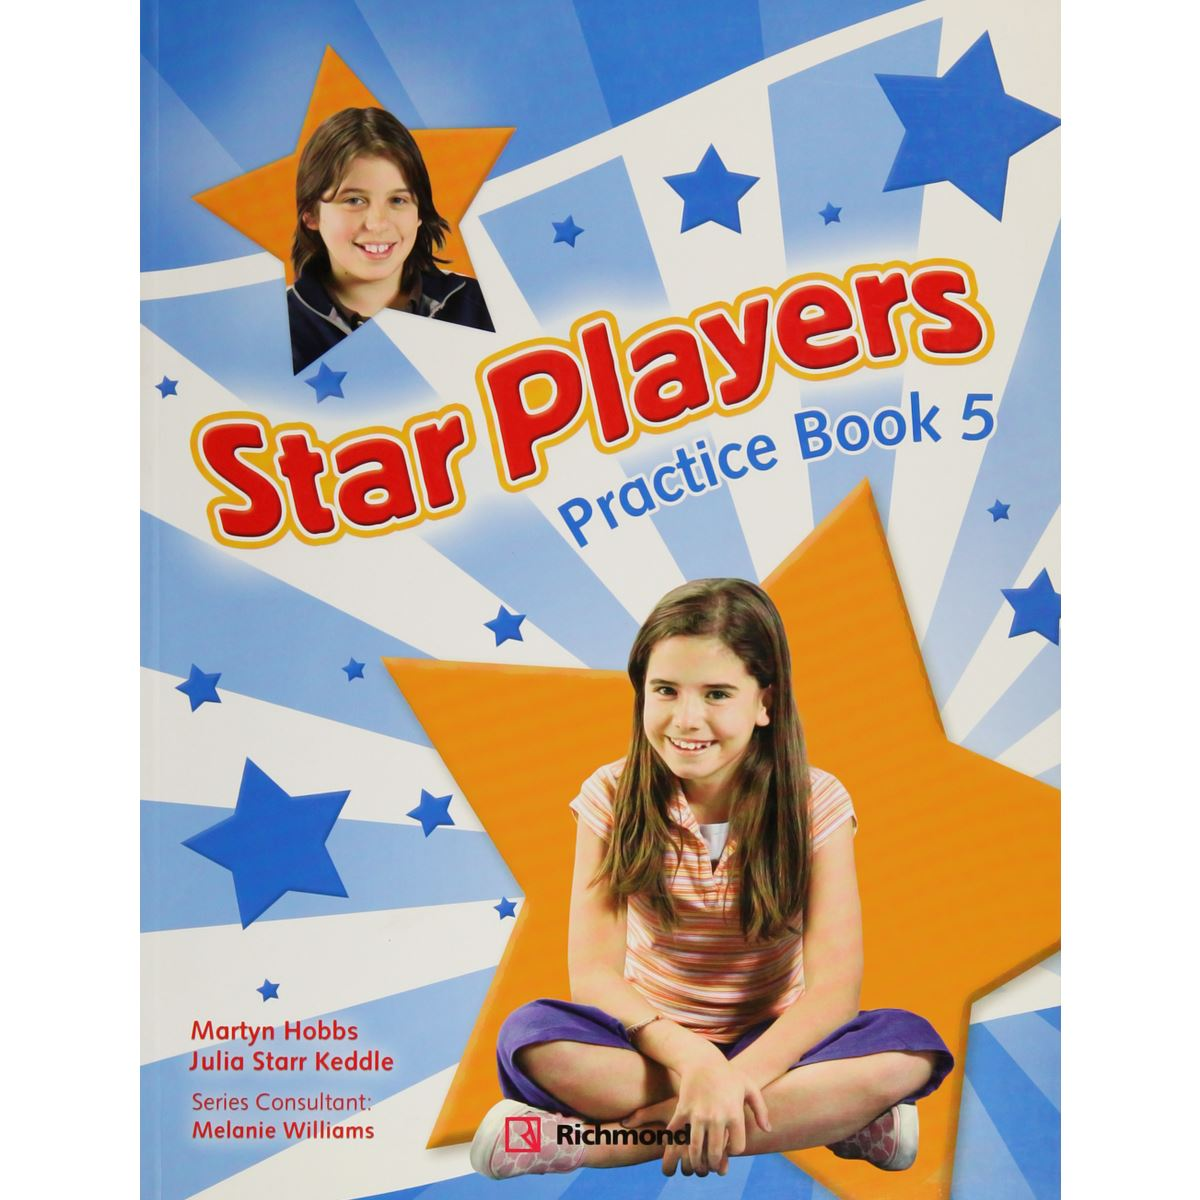 Star Players 5 Practice Book